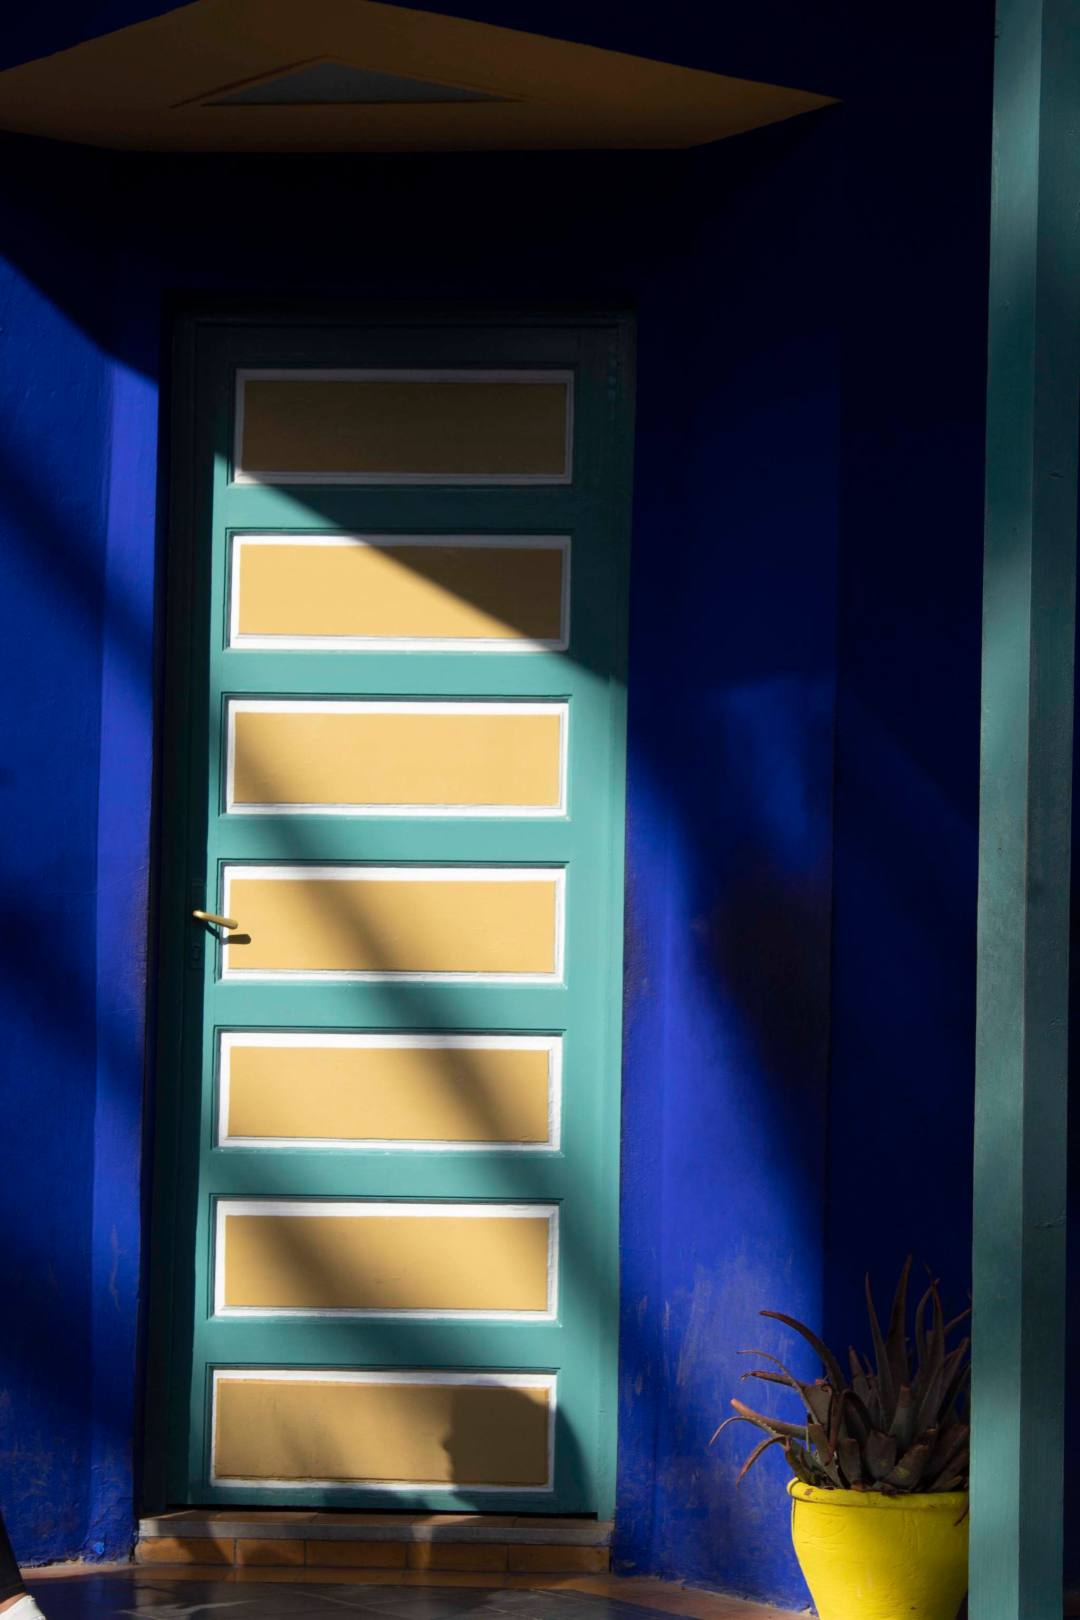 yellow and green door against blue wall with streaks of sunlight